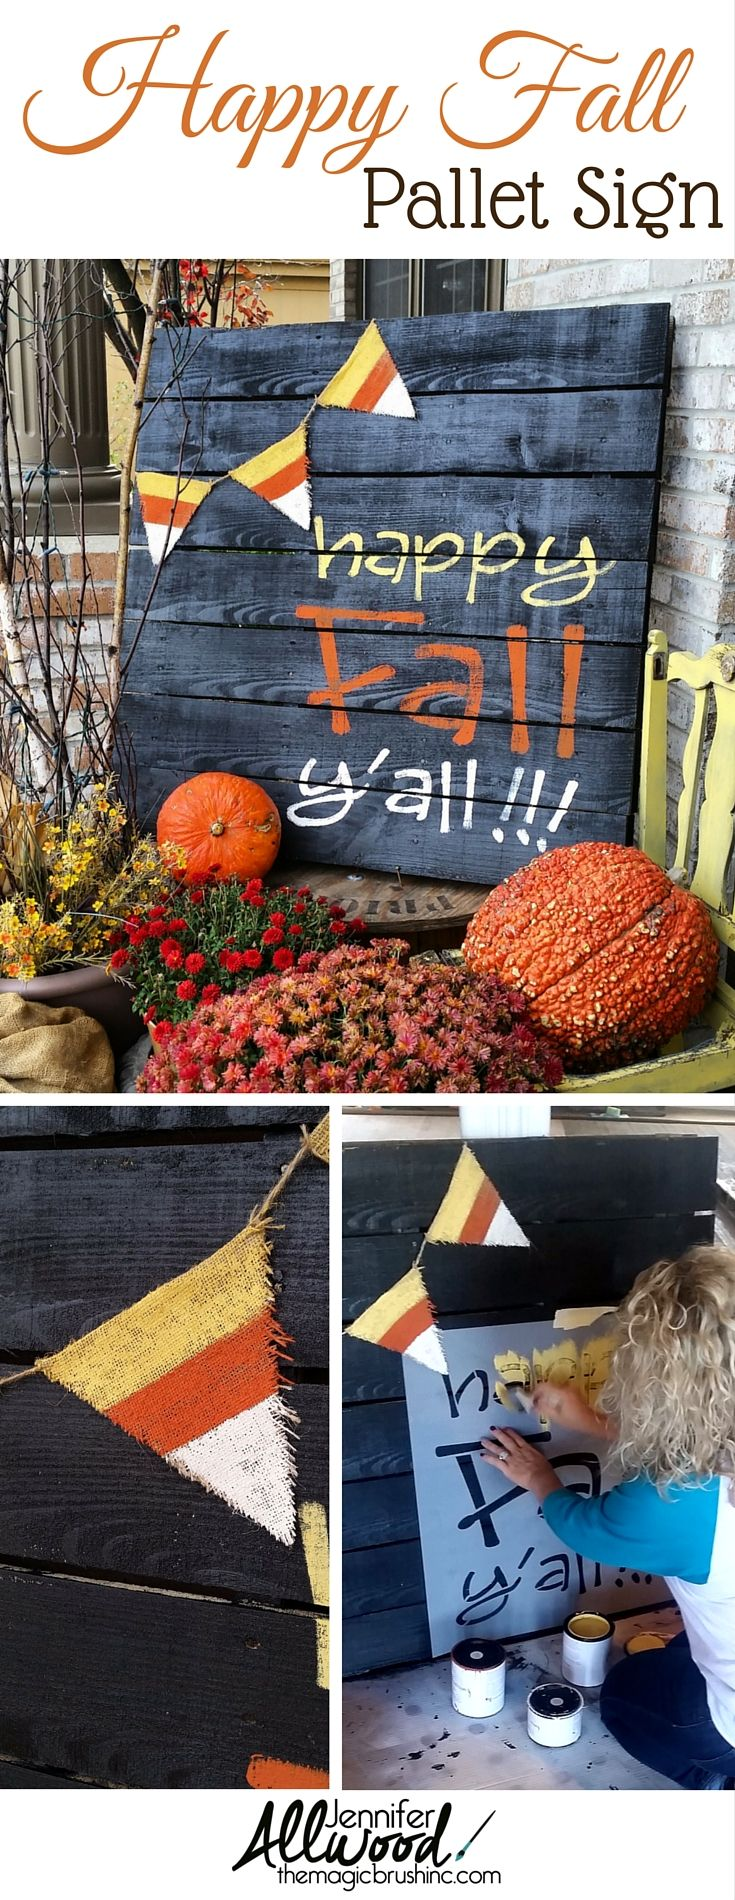 Ideas : Happy Fall Y'all painted pallet for your front porch! This is an adorable idea for your harvest themed decorations. More DIY projects and painting tips at theMagicBrushinc.com